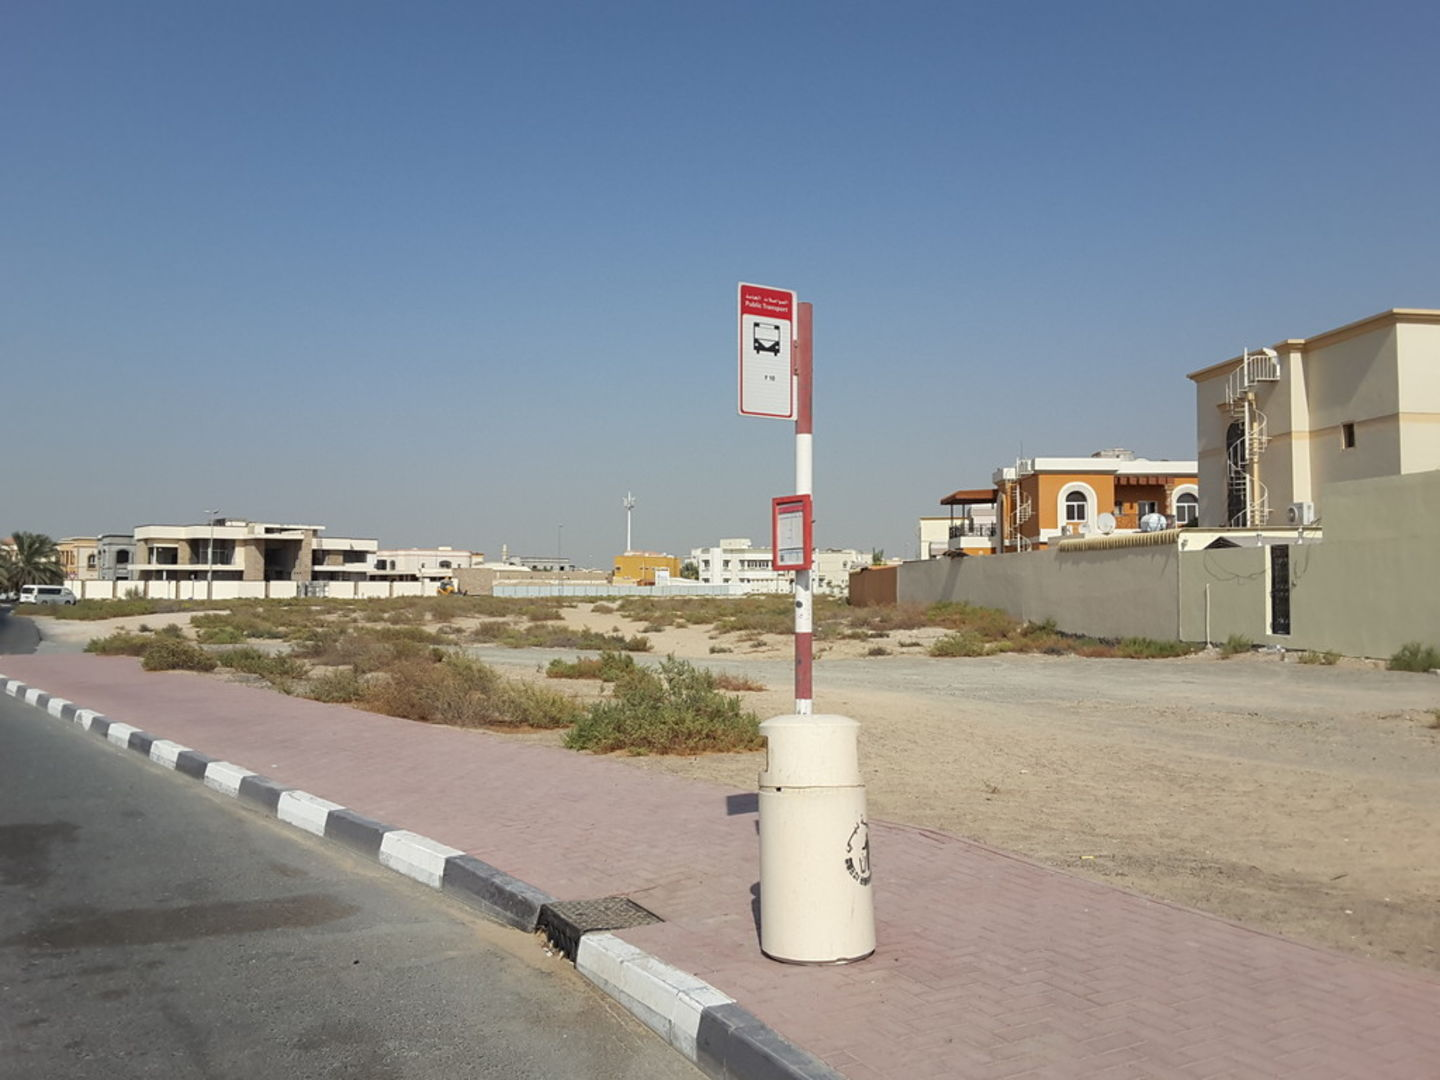 HiDubai-business-al-warqa-etisalat-tower-2-bus-stop-transport-vehicle-services-public-transport-al-warqaa-3-dubai-2